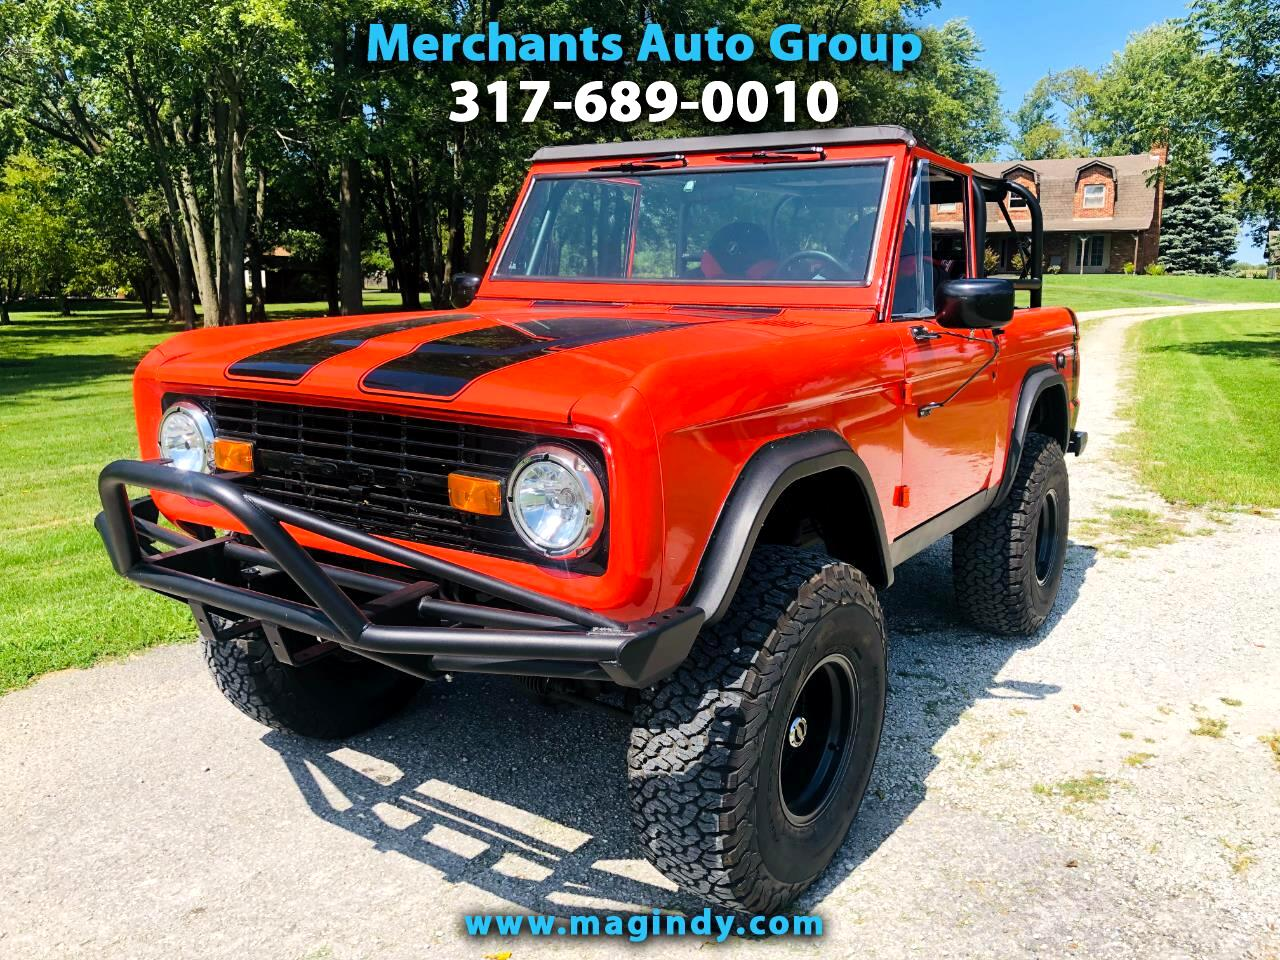 1972 Ford Bronco 4WD 2dr Soft Top